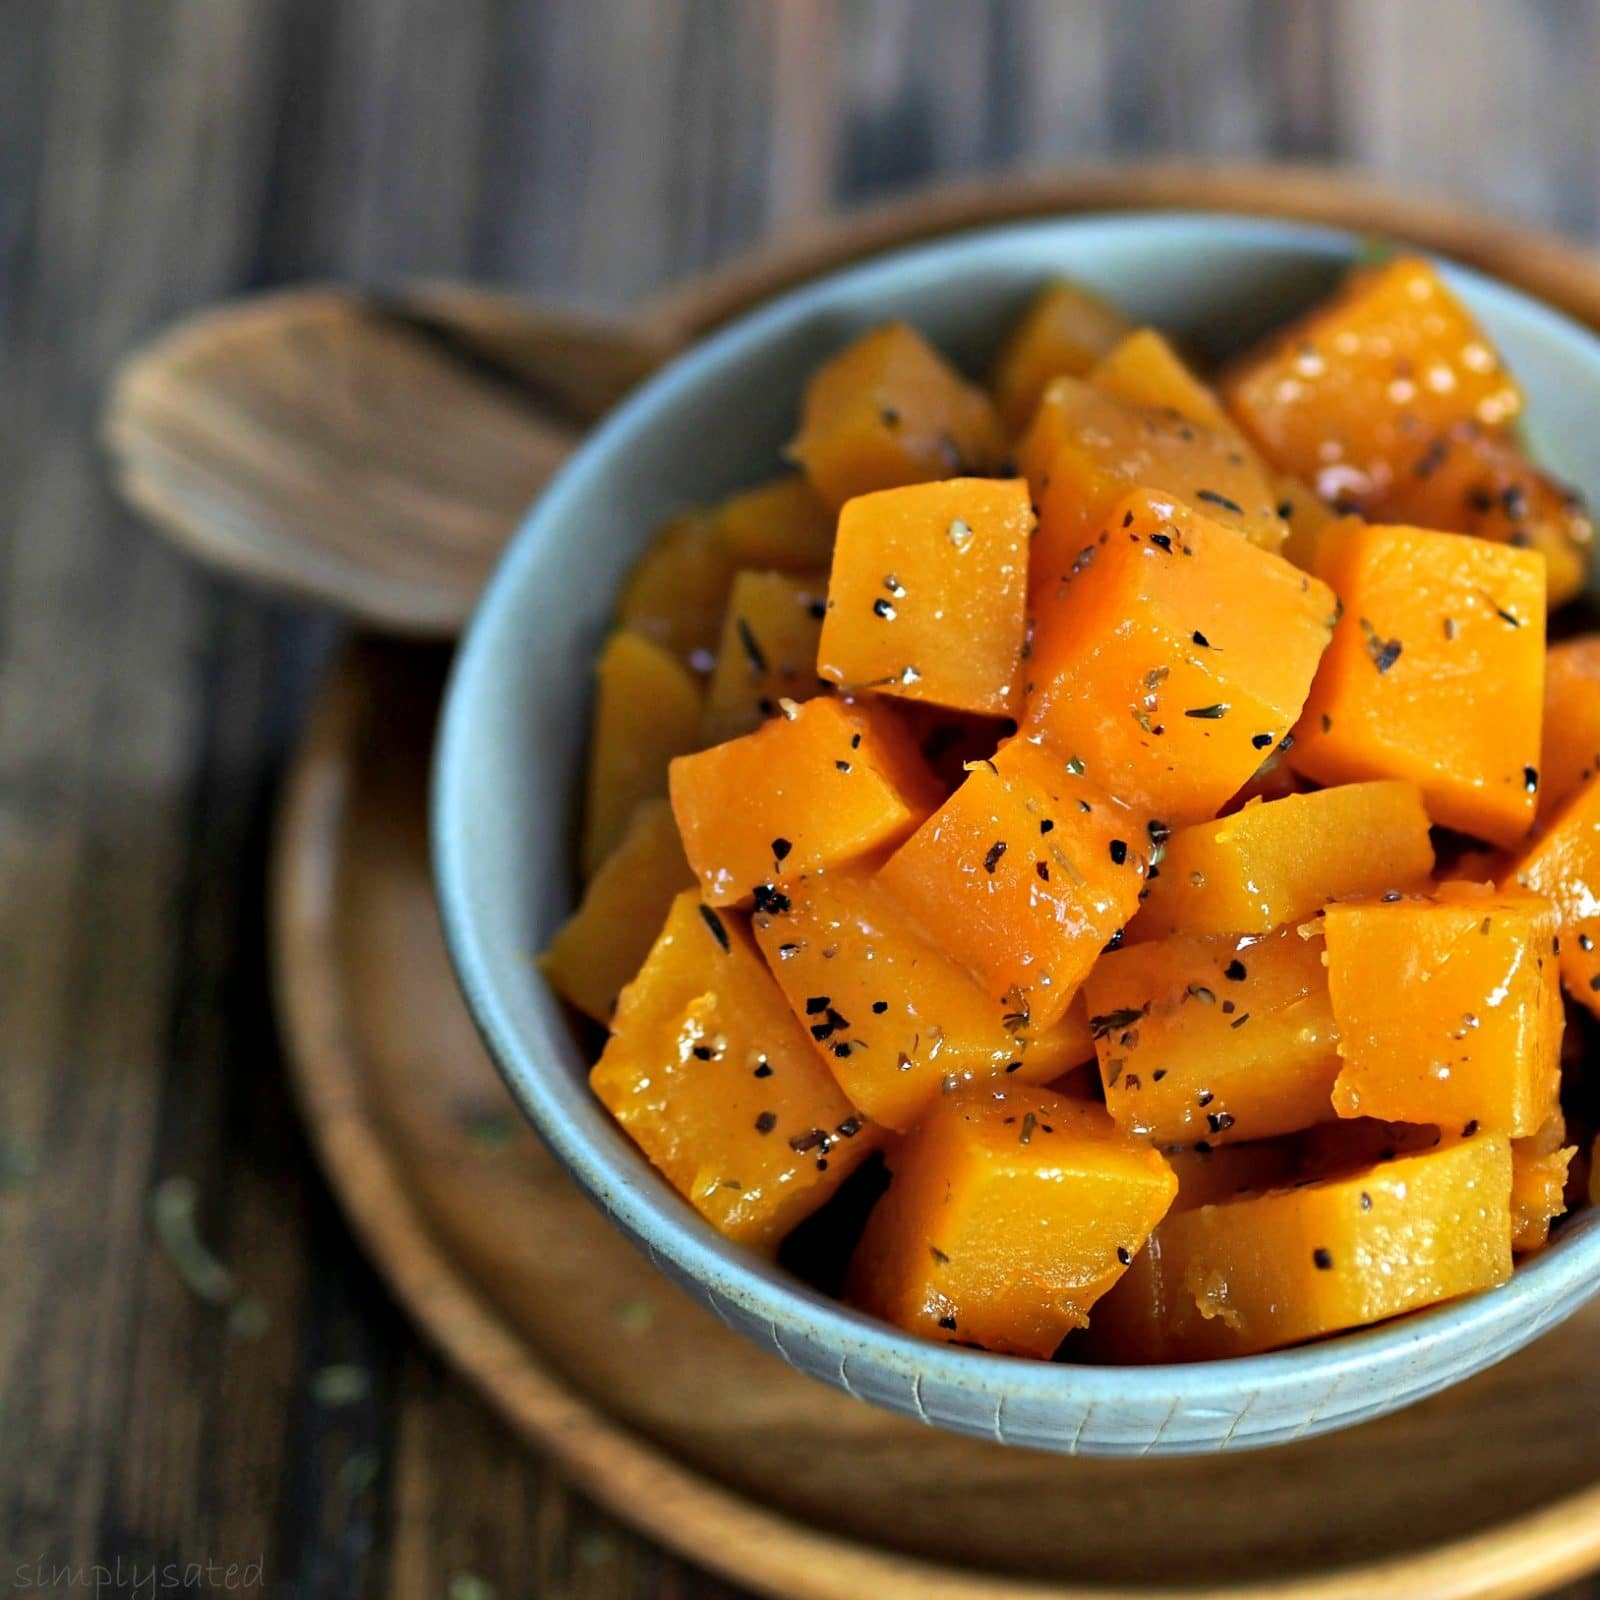 Cider-Glazed Butternut Squash with apple cider, brown sugar, ginger, bouquet garni & a touch of Southern Comfort. Simply Sated